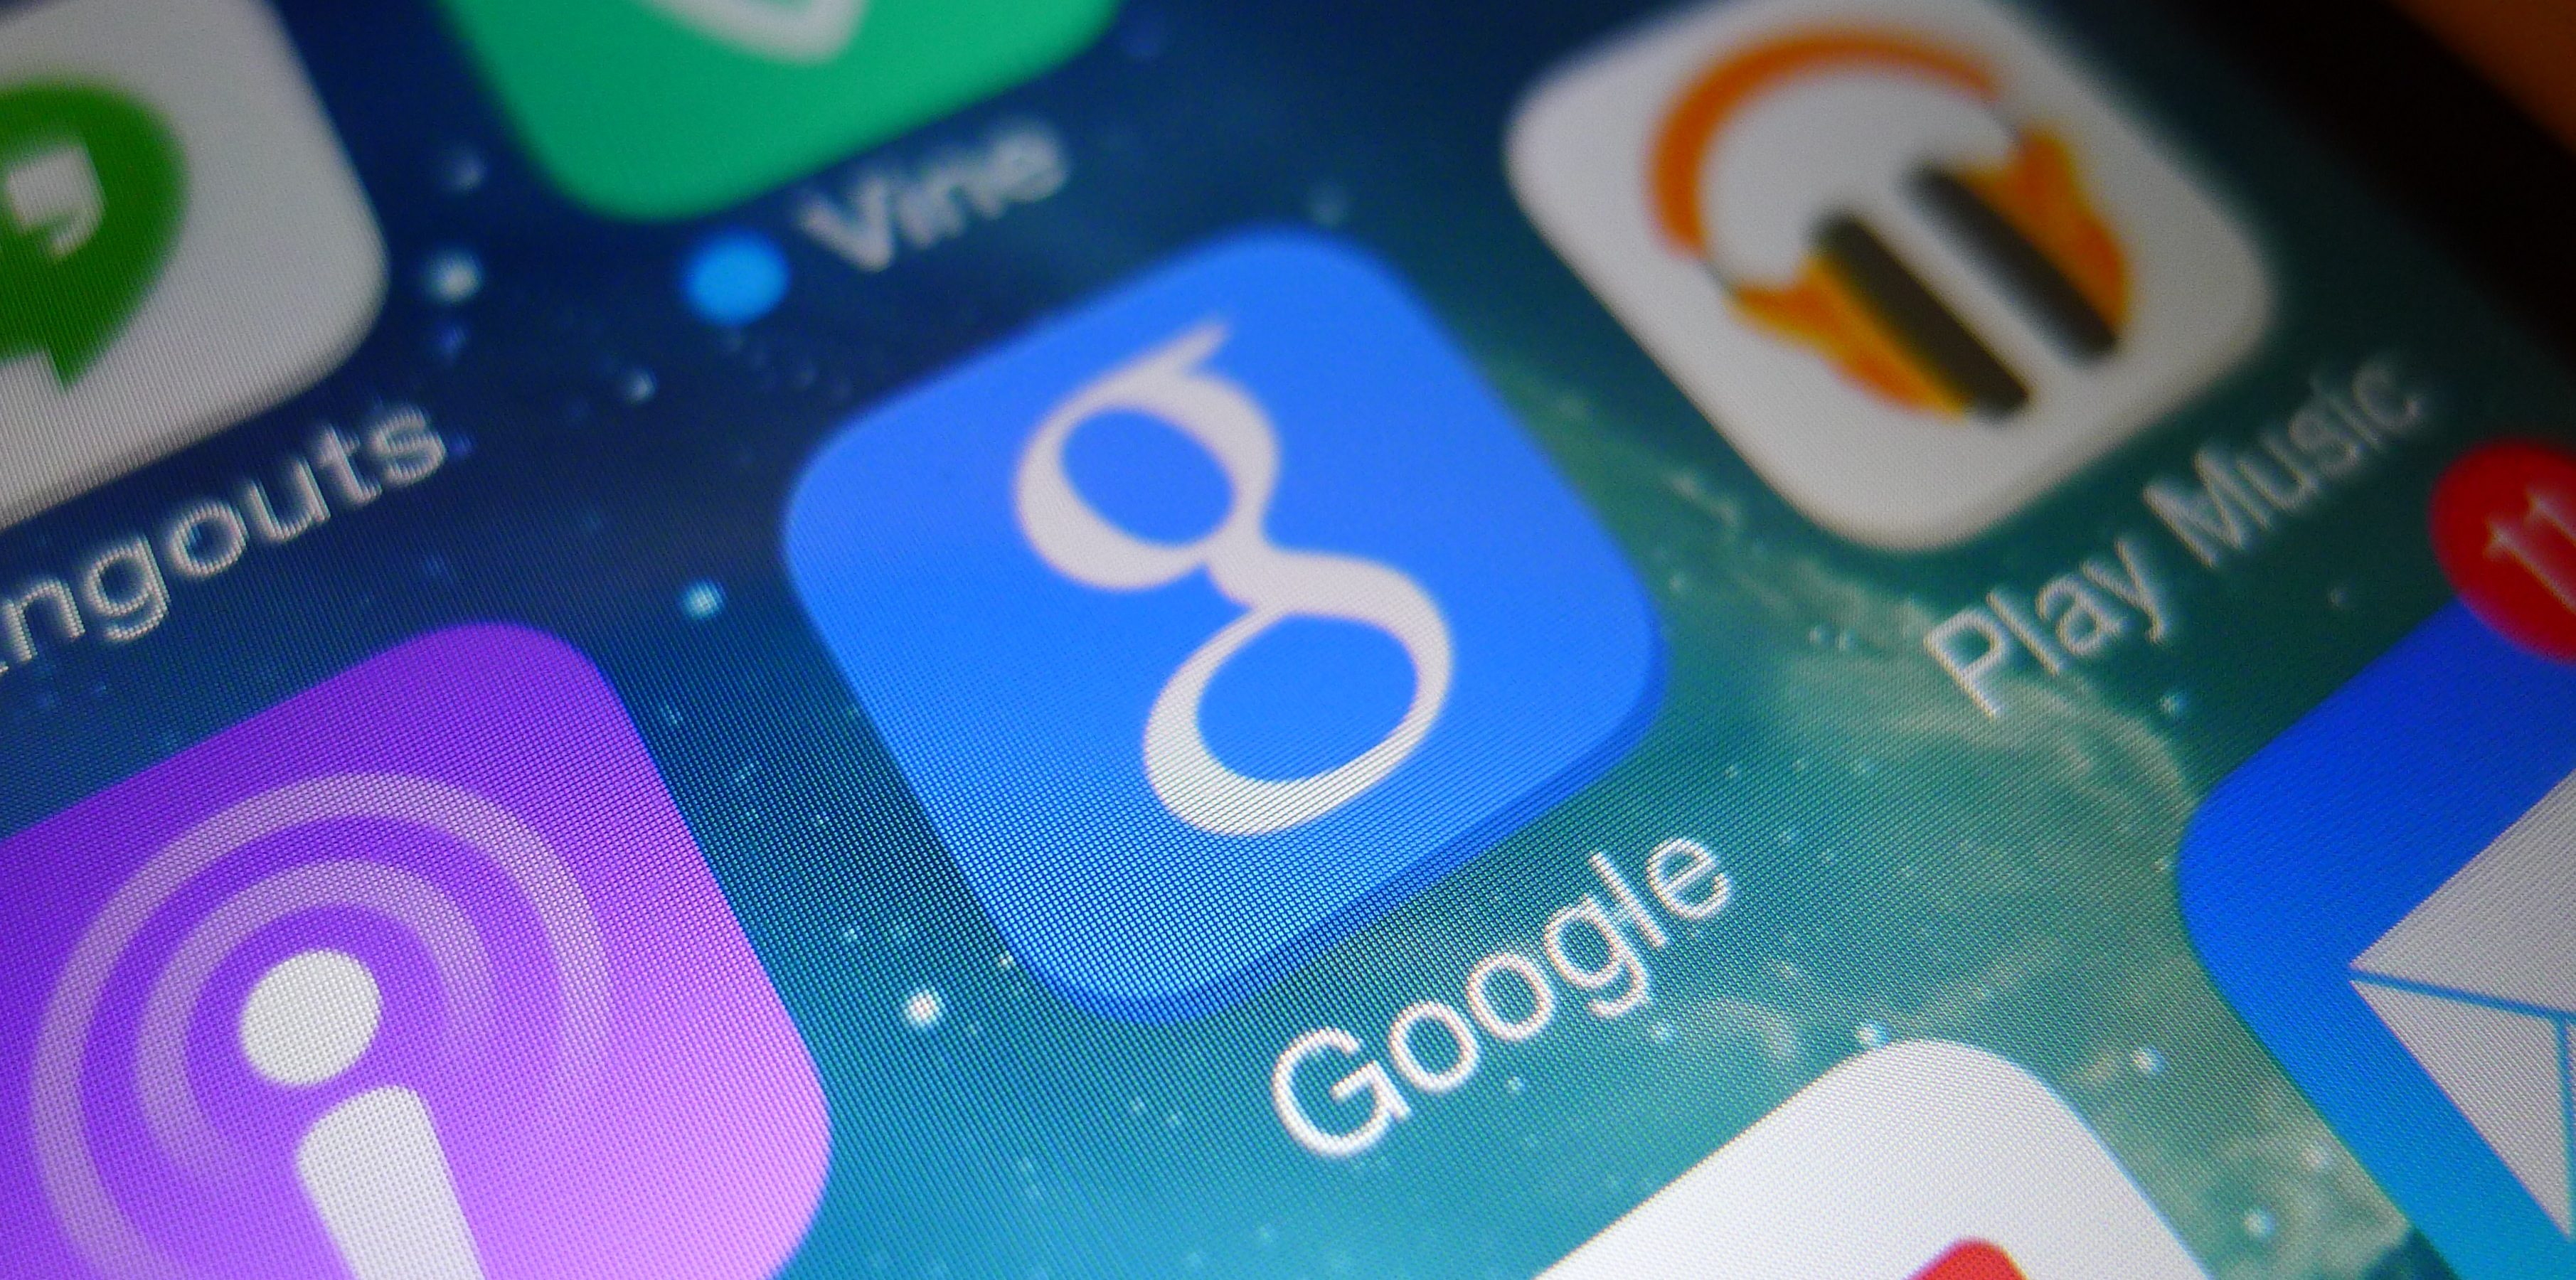 Google Search app gets an iOS 7 redesign, smarter Google Maps integration and image search on iPad